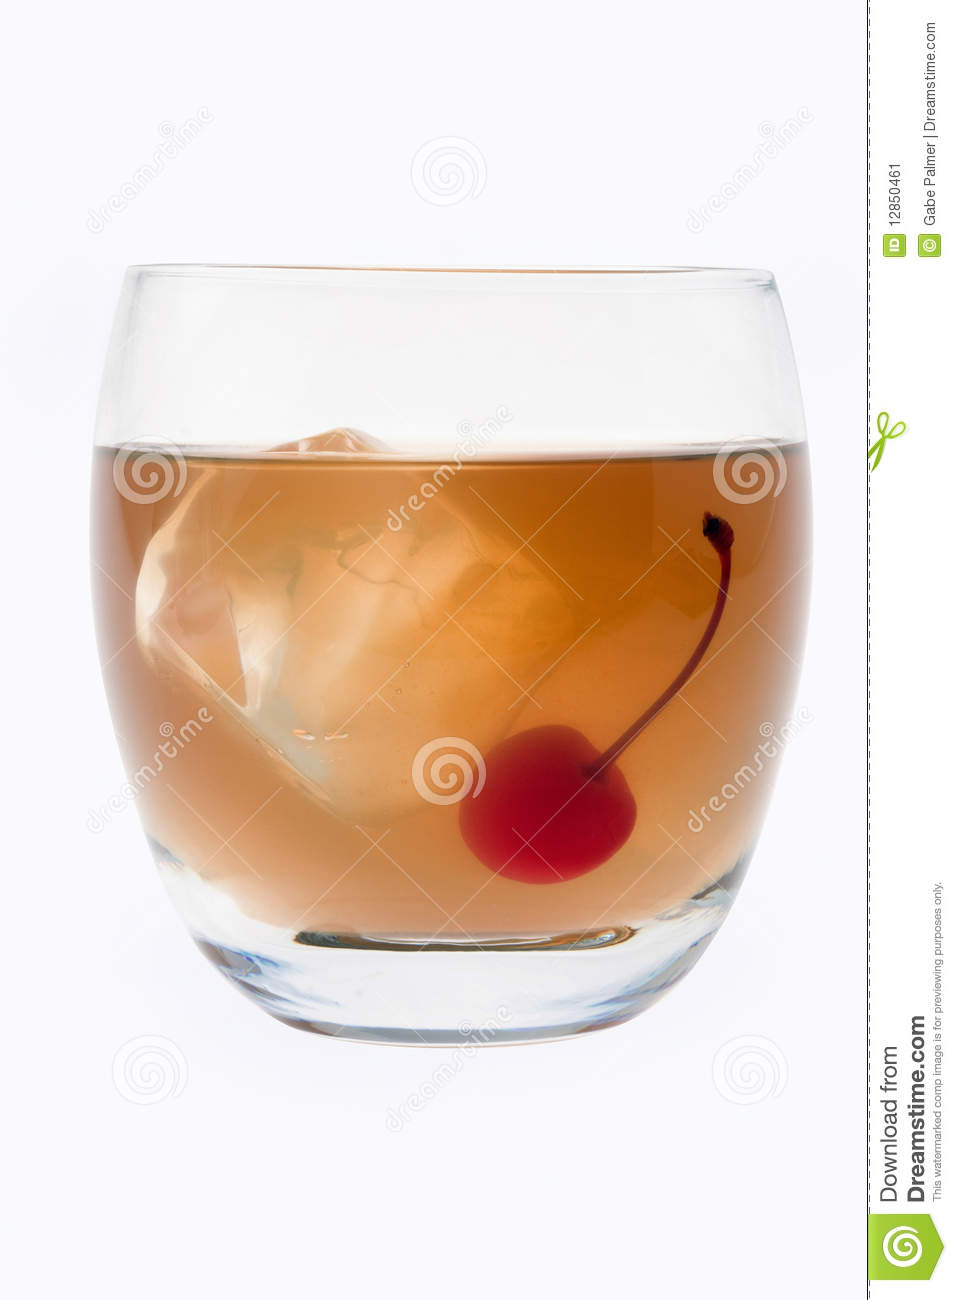 Whiskey Sour Cocktail On A White Background Stock Image - Image ...